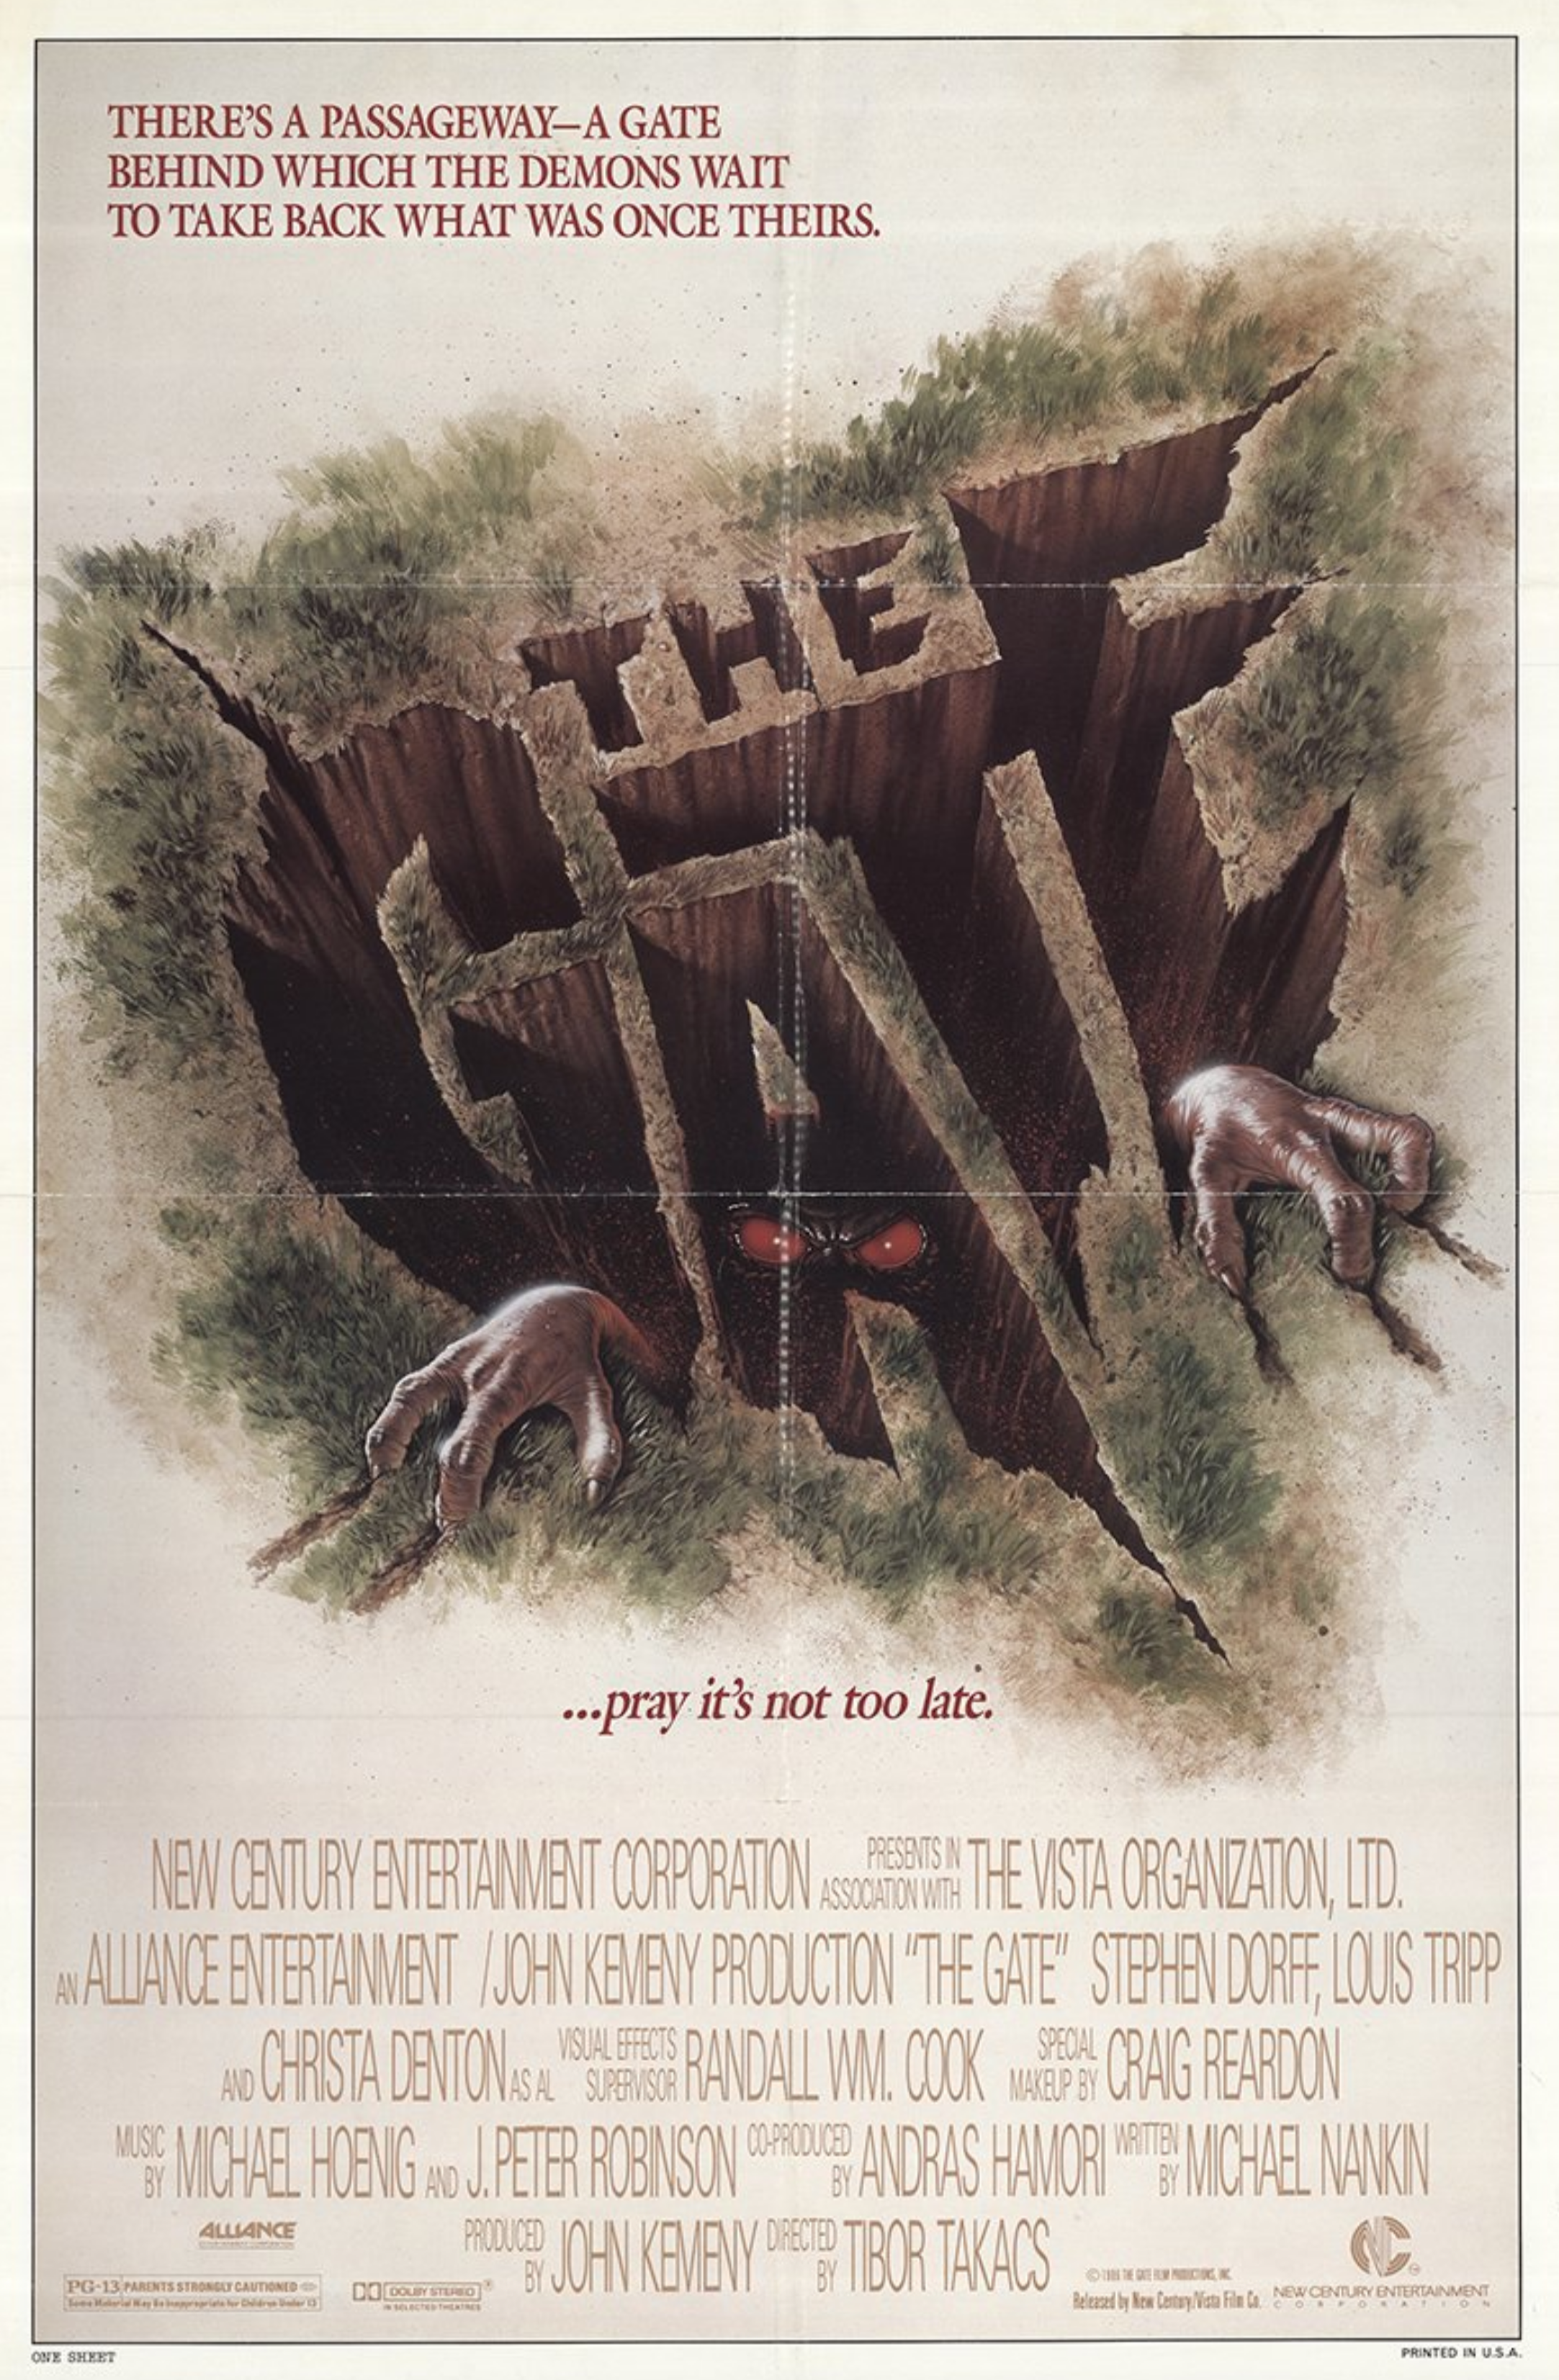 Original Movie Poster for The Gate from 1987. Horror